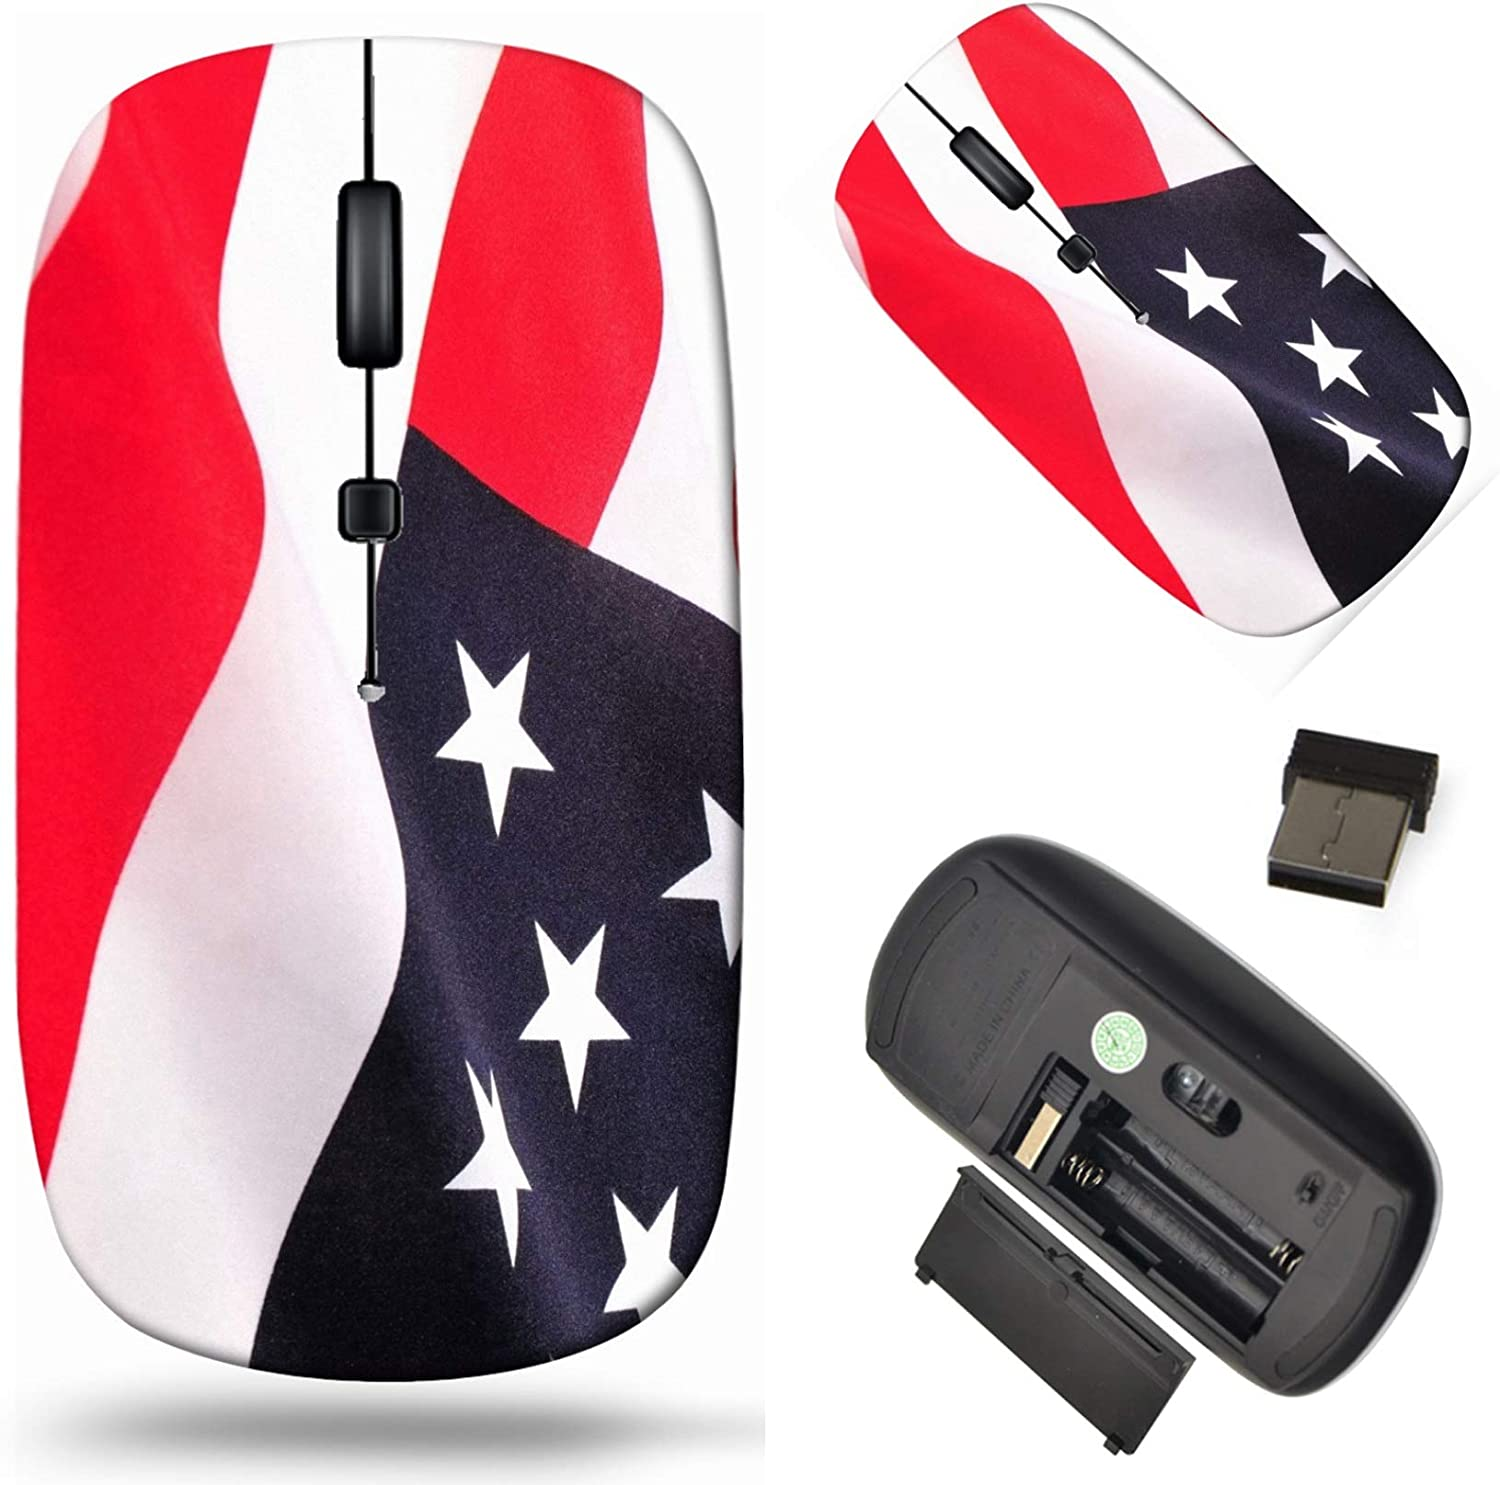 Wireless Computer Mouse 2.4G with Cor Limited time store sale Receiver USB Laptop